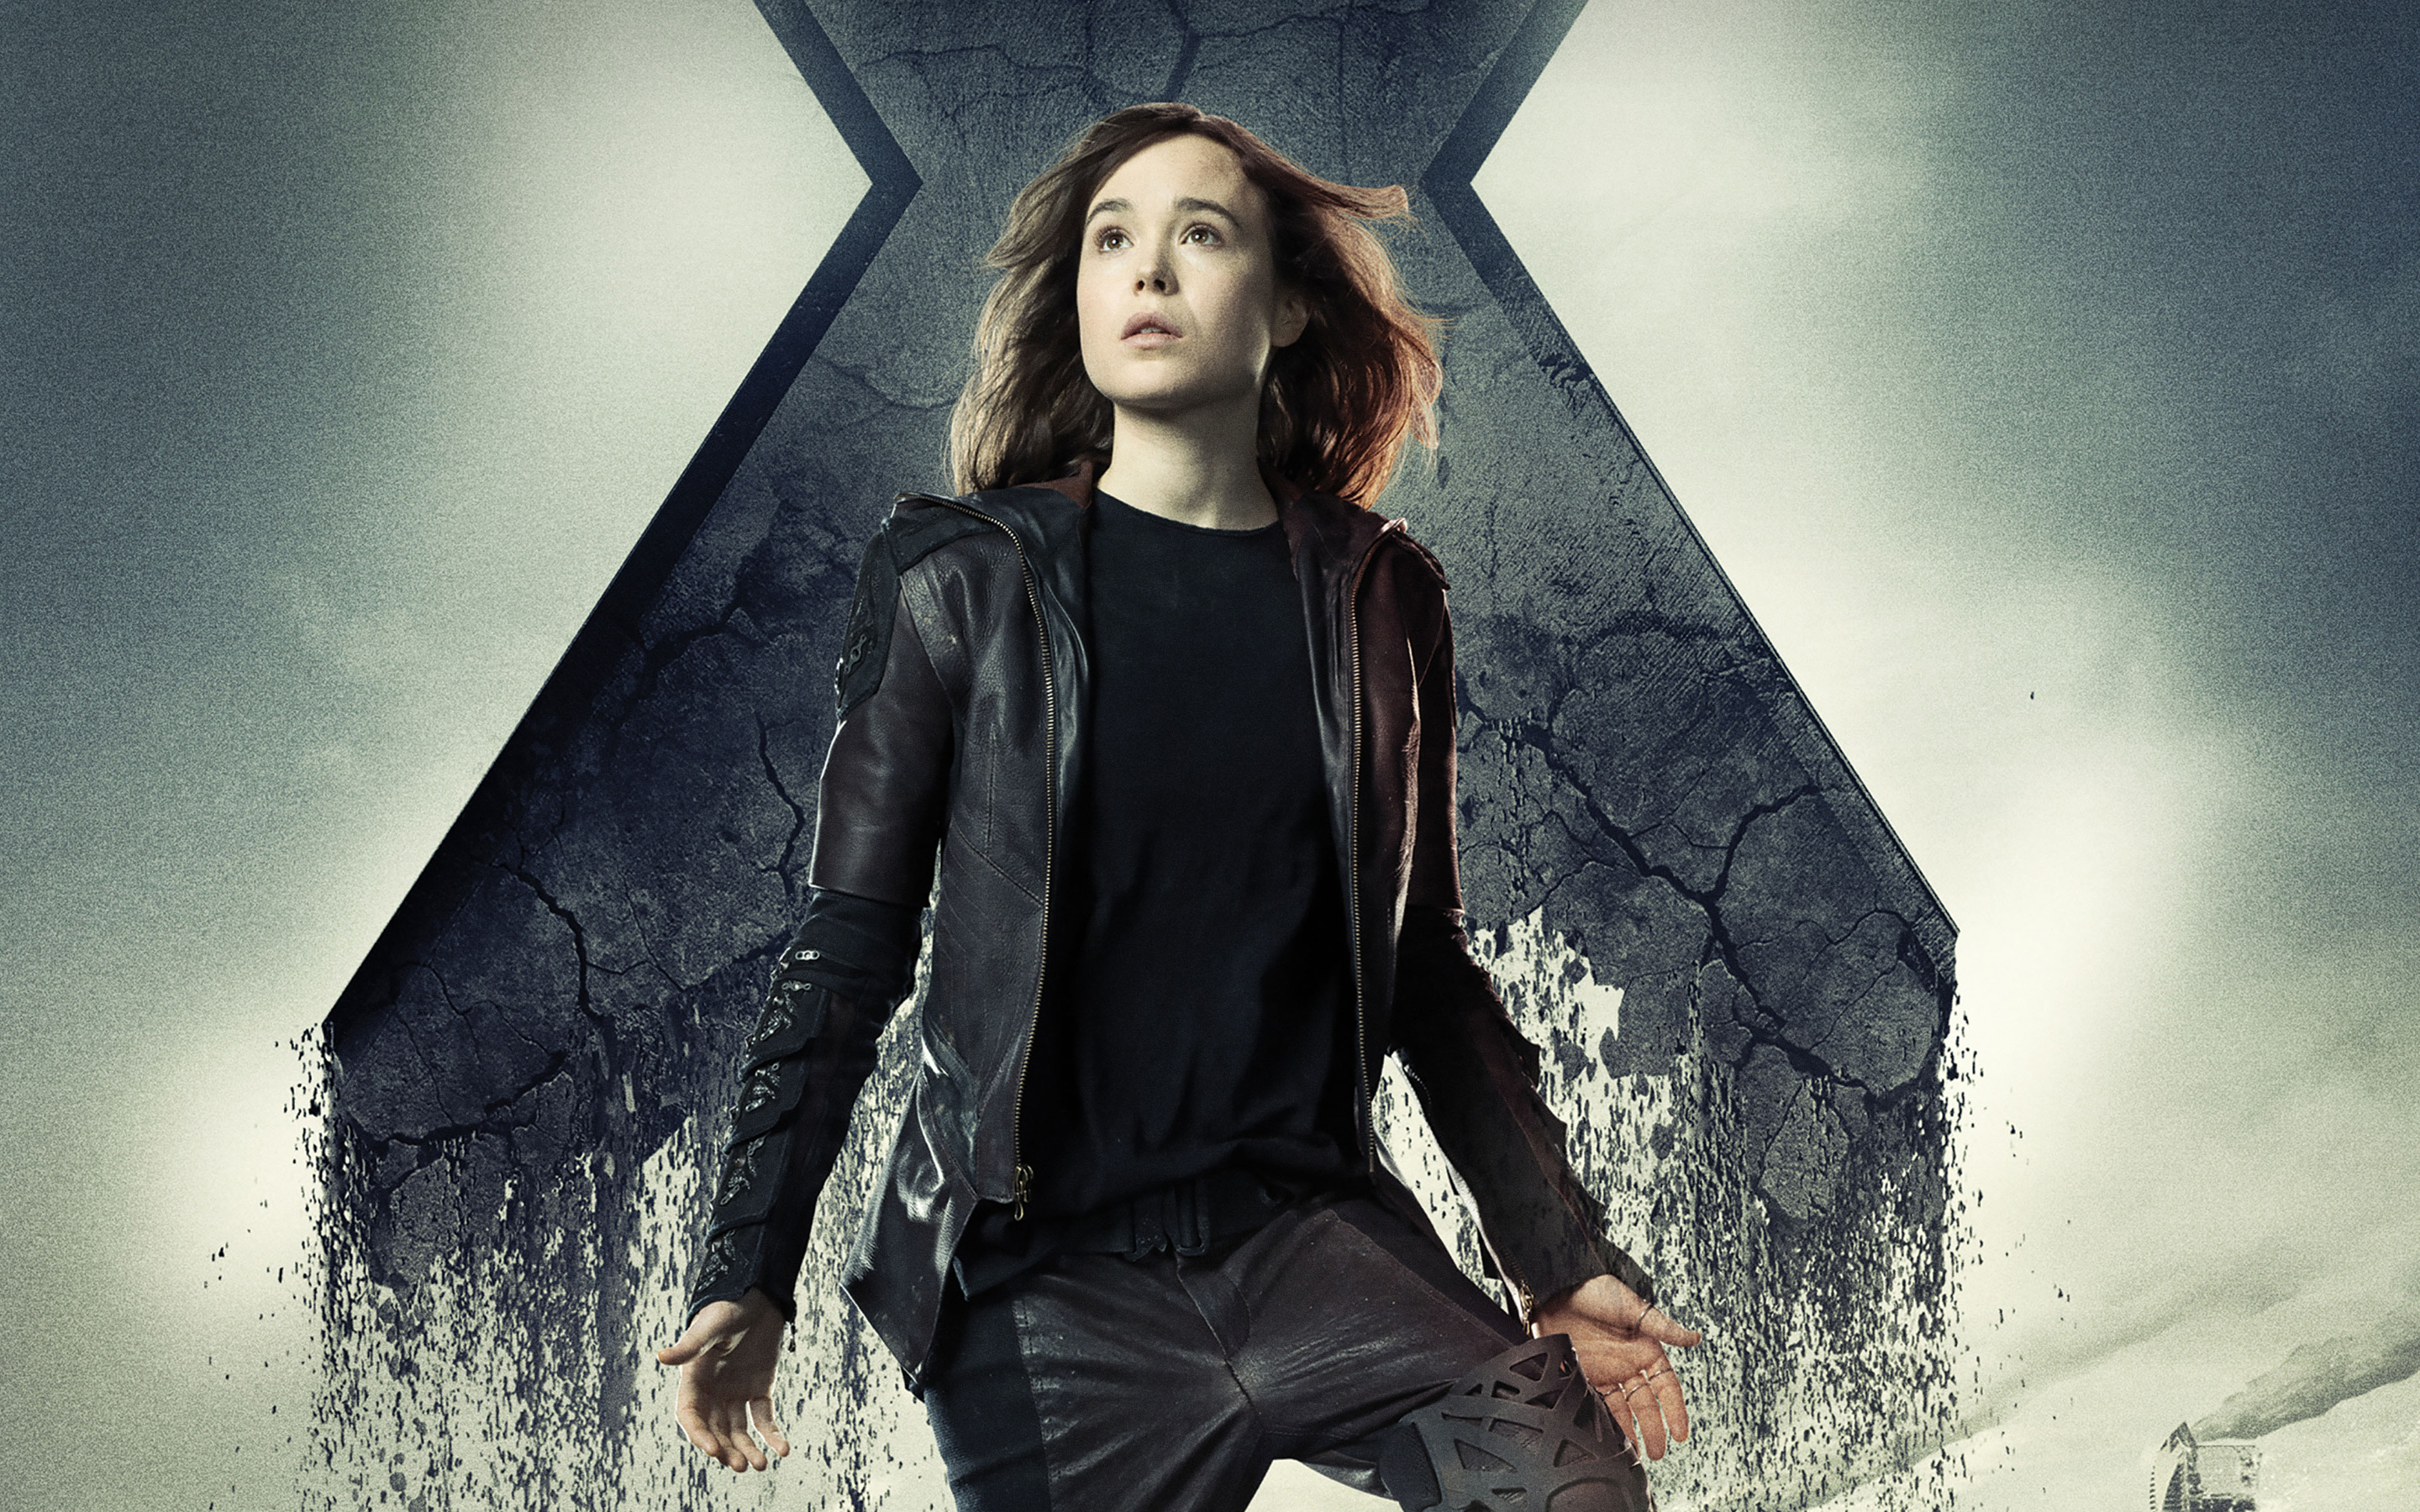 Ellen Page X Men Days Of Future Past Hd Wallpaper